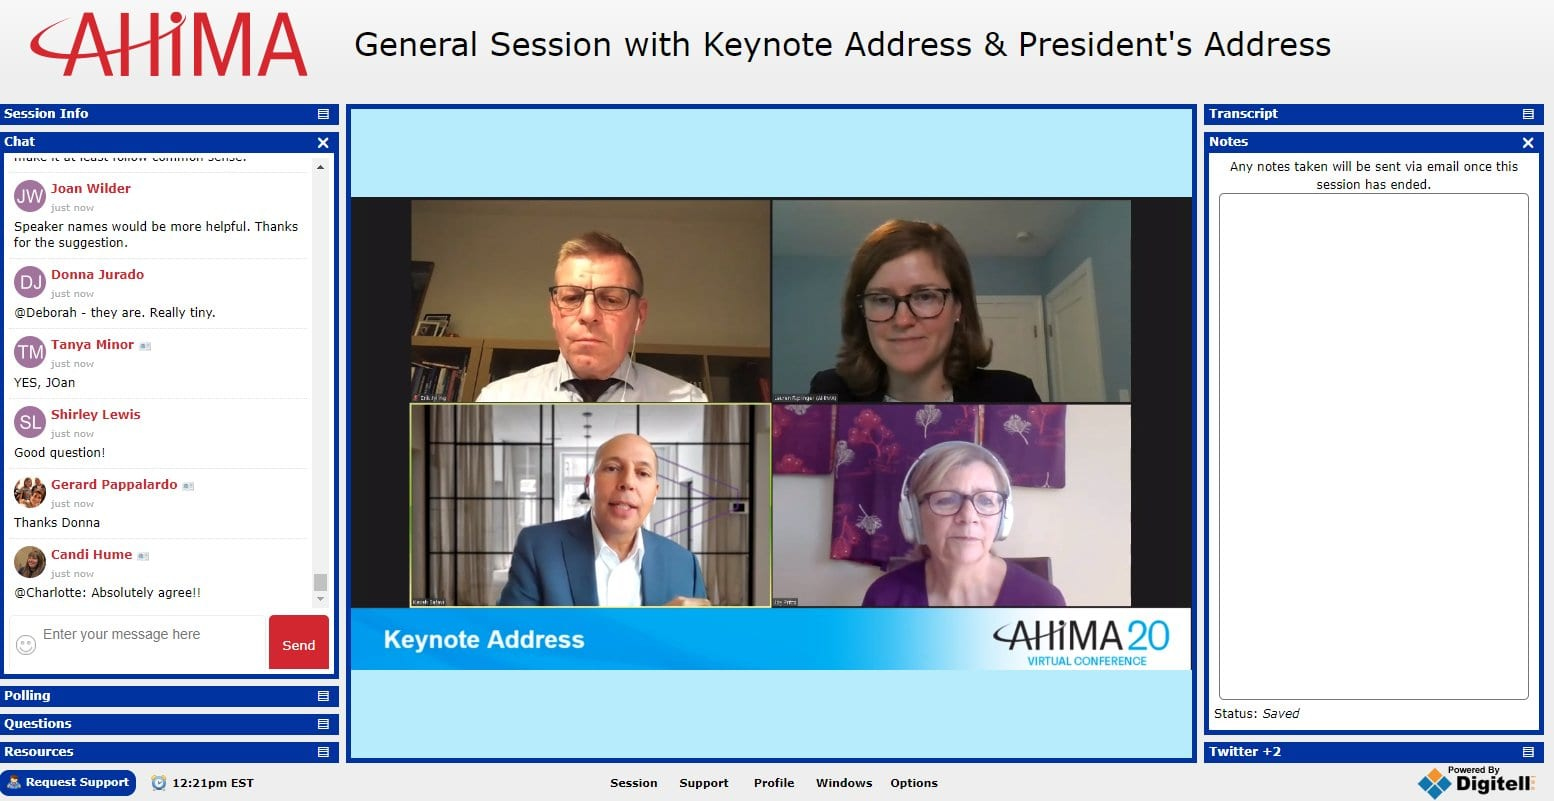 Data Protection and Privacy key theme at AHIMA20